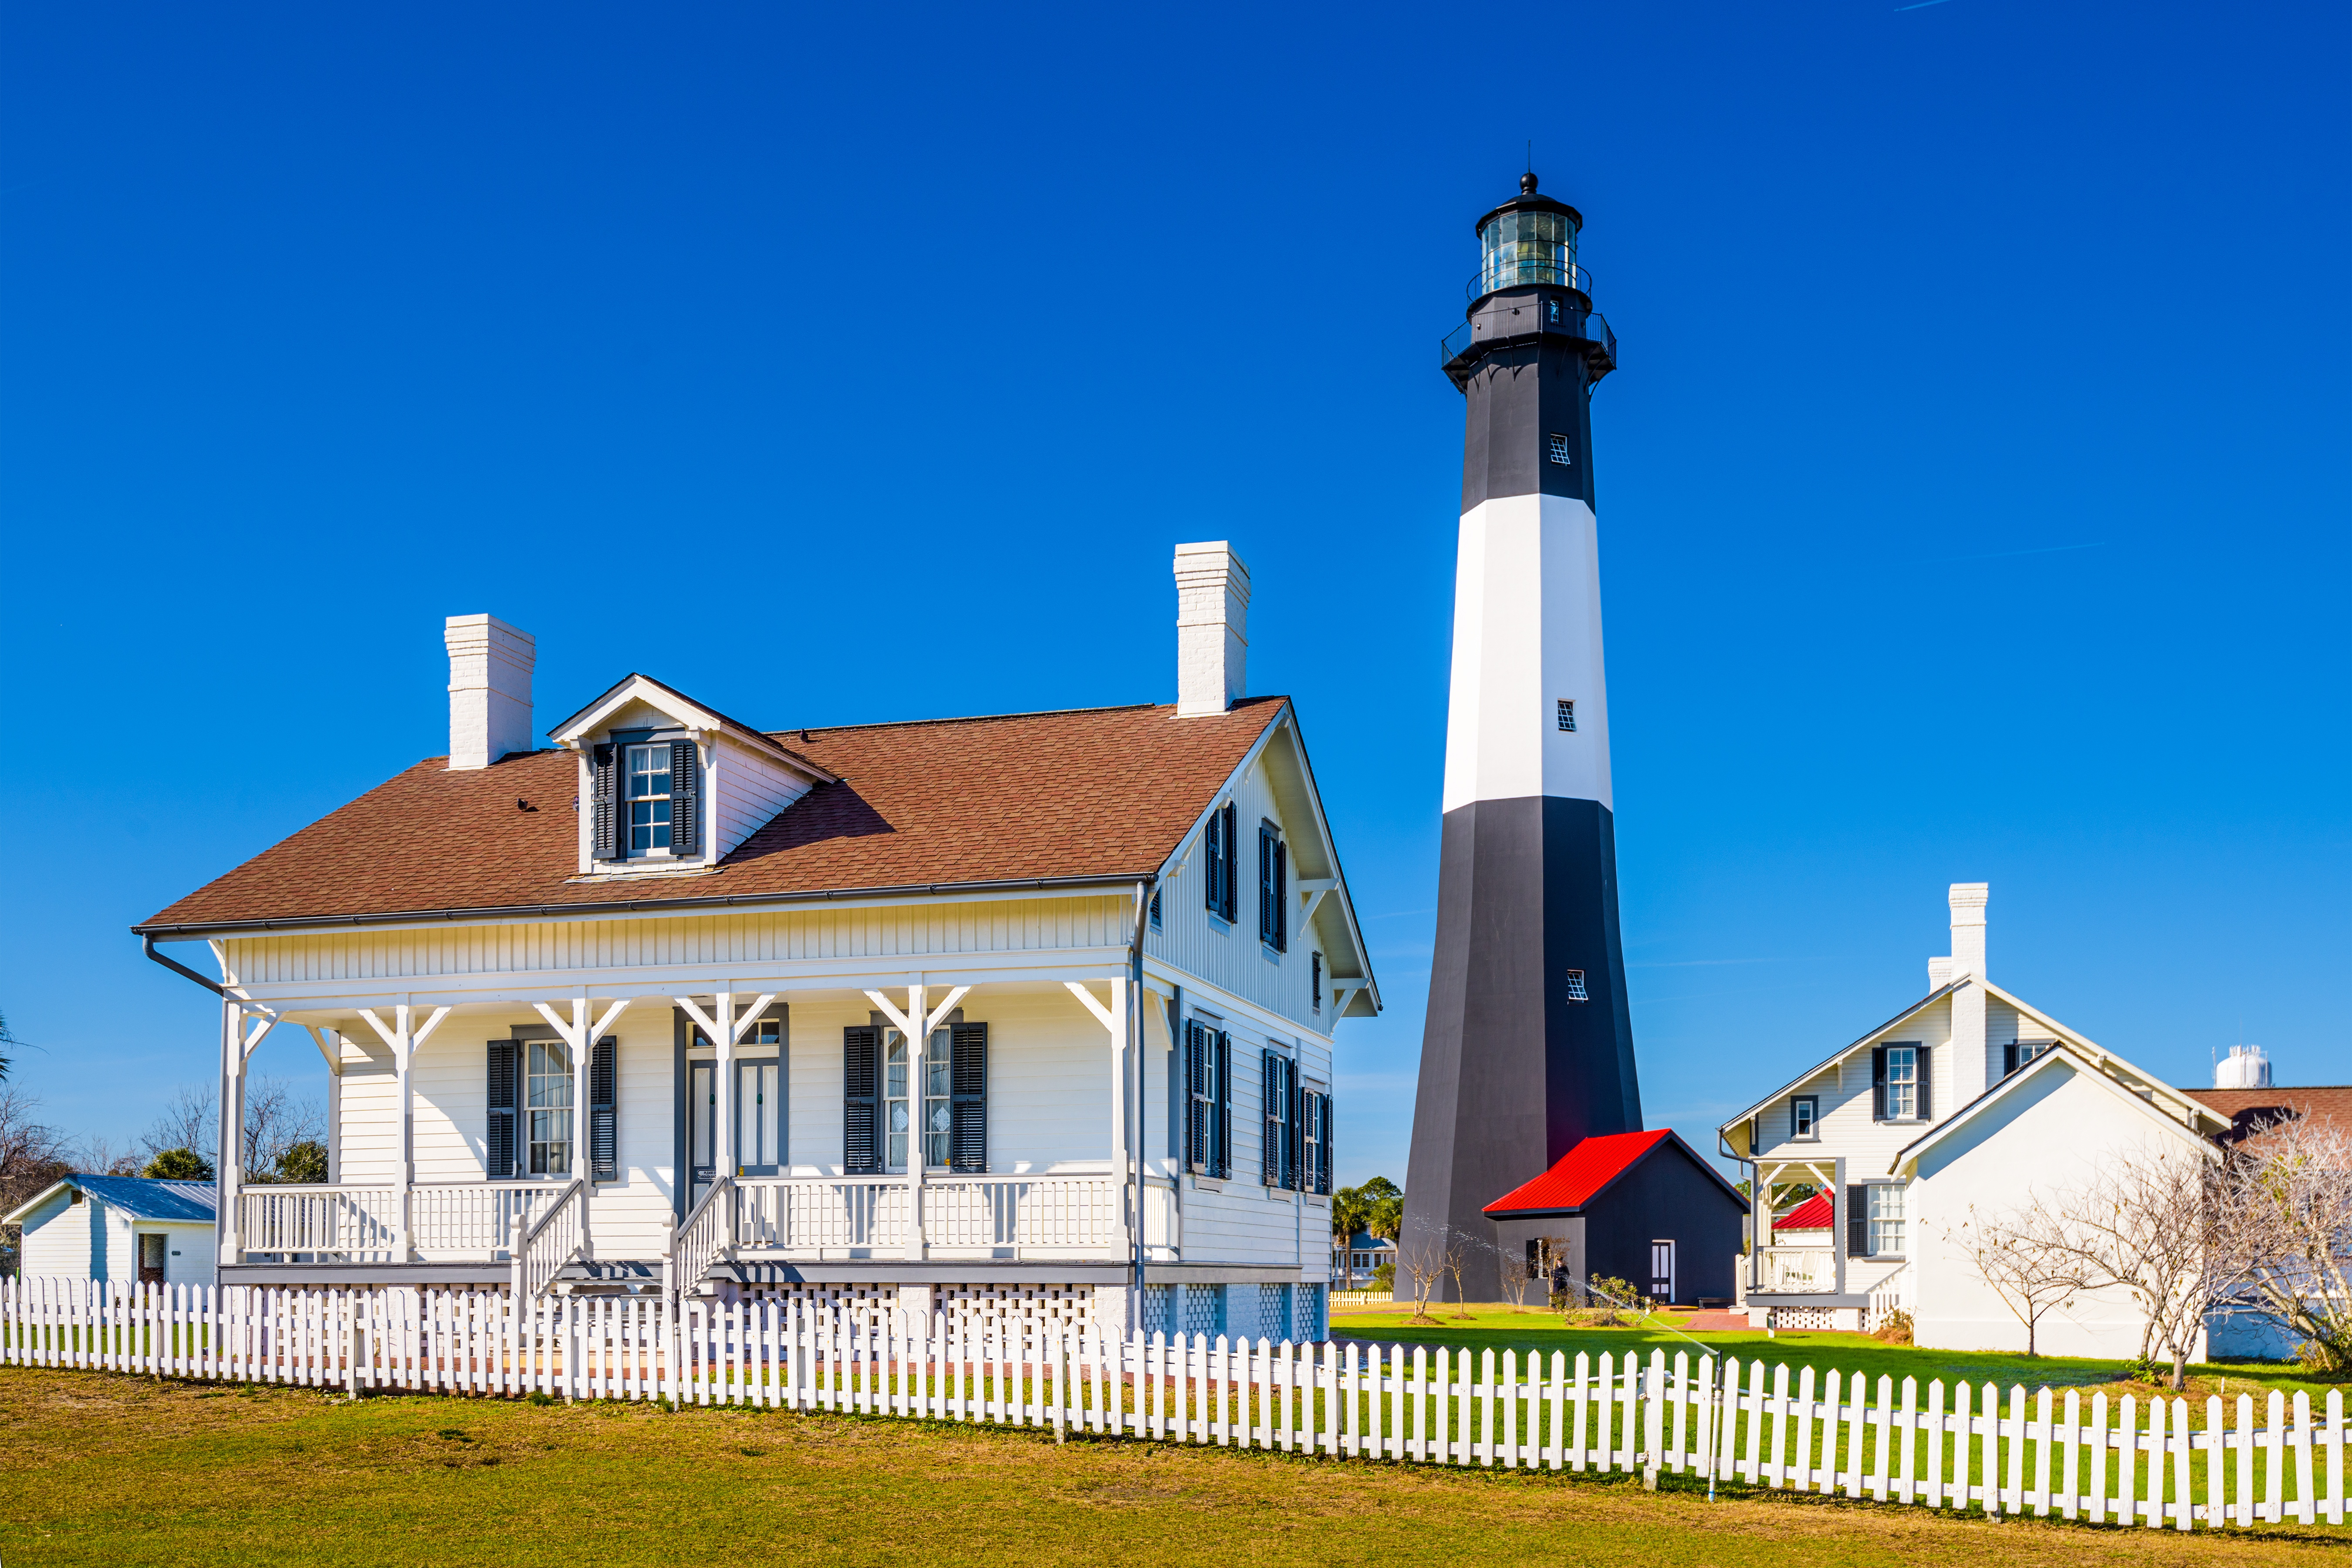 Tybee Island Lighthouse is a popular attraction near Savannah, Georgia for RV snowbirds traveling down I-95 to Florida